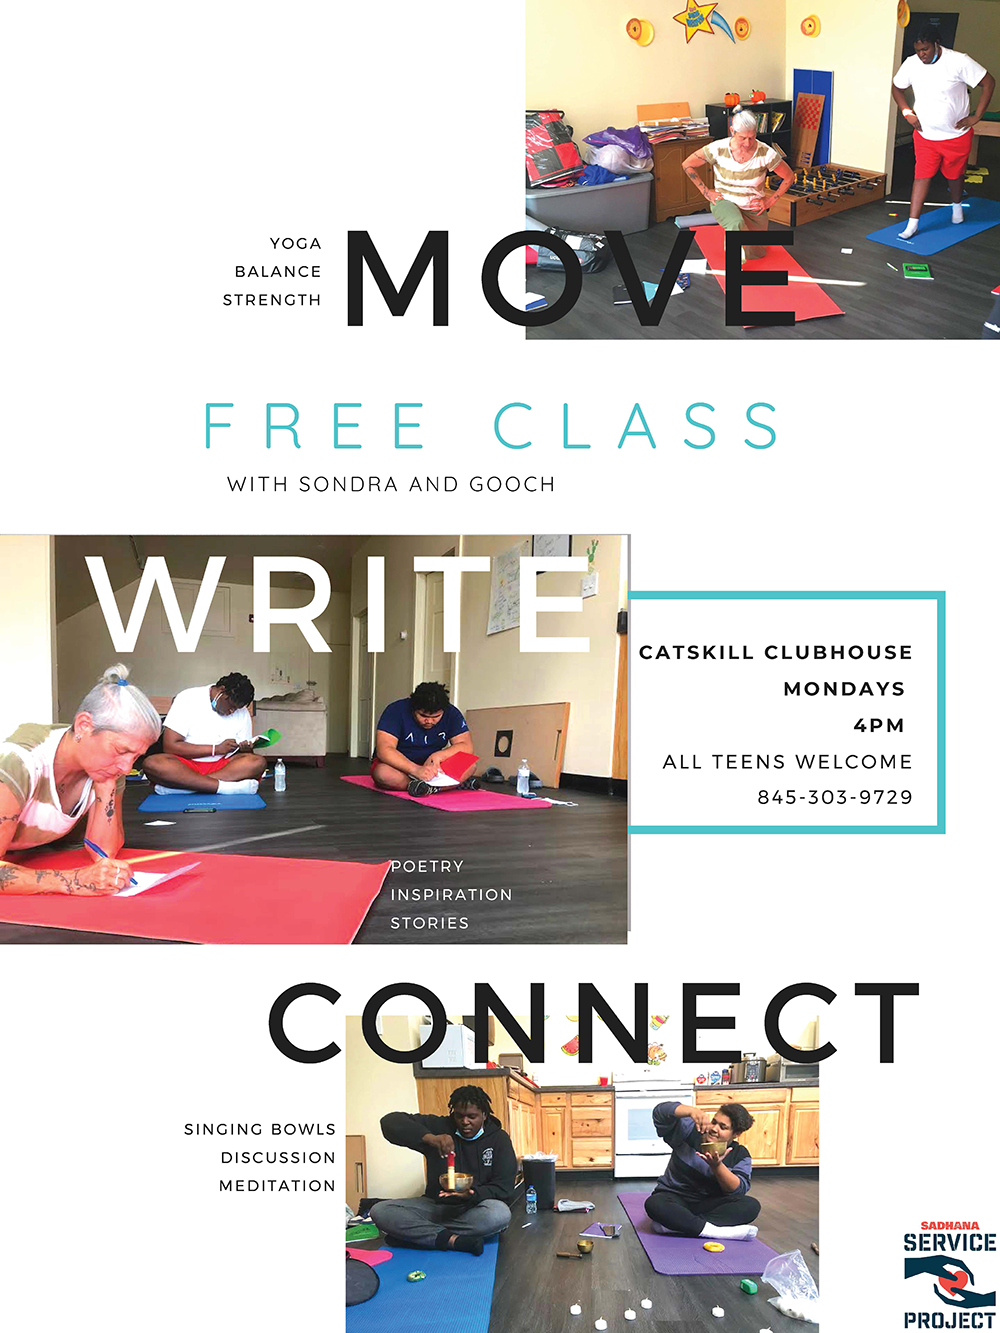 yoga, writing and connection Mondays at 4 at Catskill Youth Clubhouse